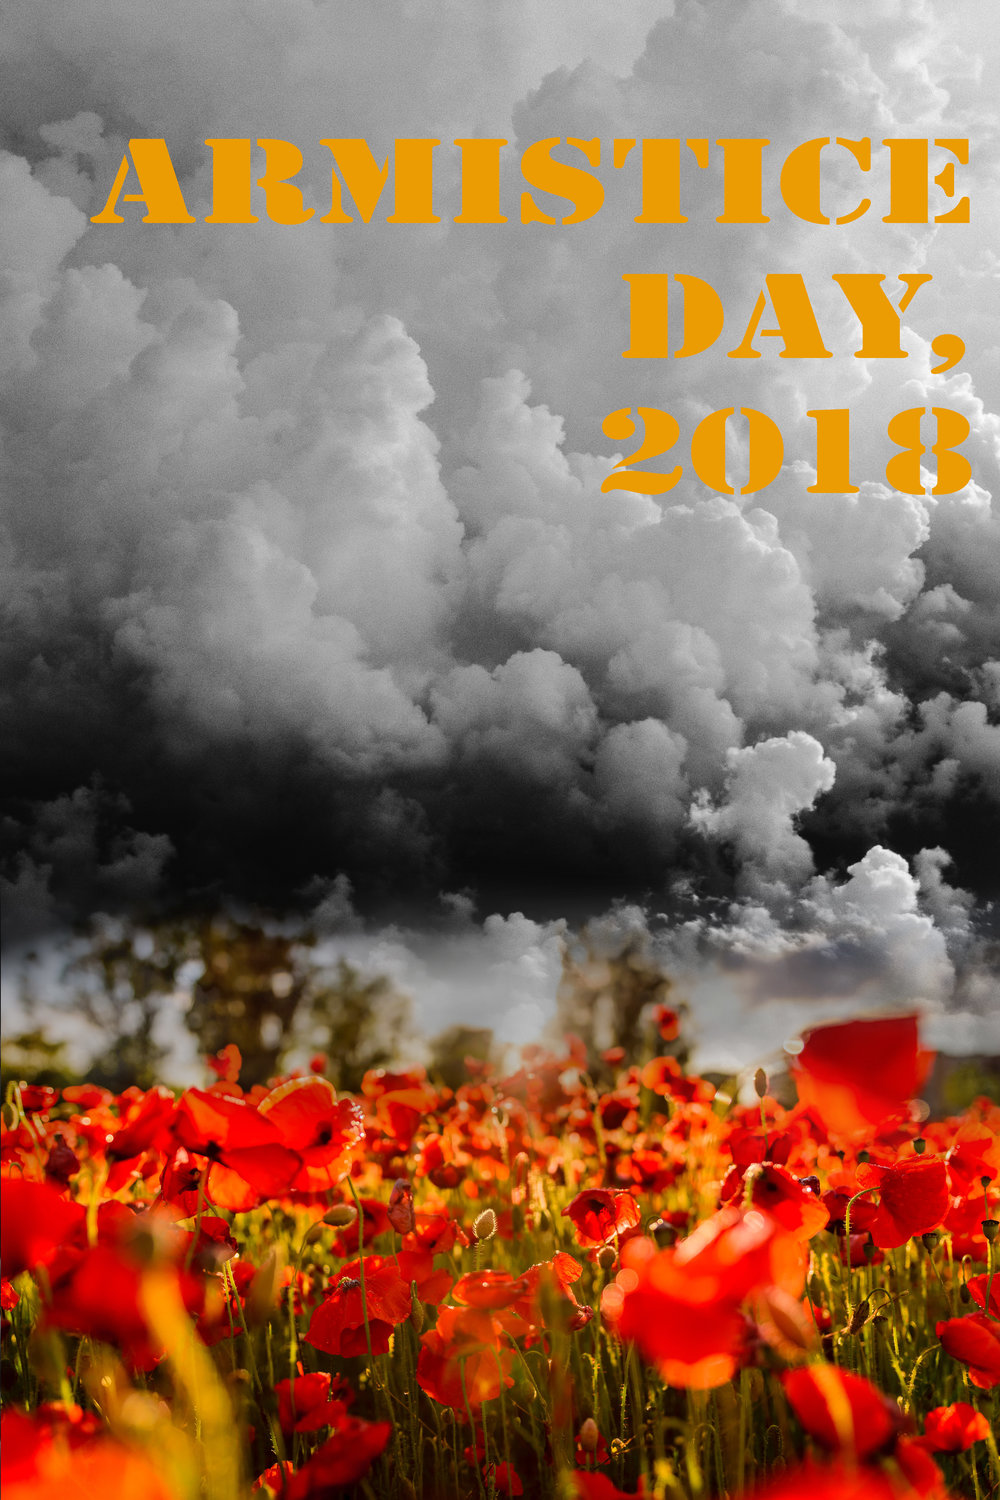 Image derived from Unsplash.com, where all photos published on Unsplash can be used for free. You can use them for commercial and noncommercial purposes. You do not need to ask permission from or provide credit to the photographer or Unsplash. Image from Unsplash was modified by Frontline Arts interns for use in our Armistice Day, 2018 publications.